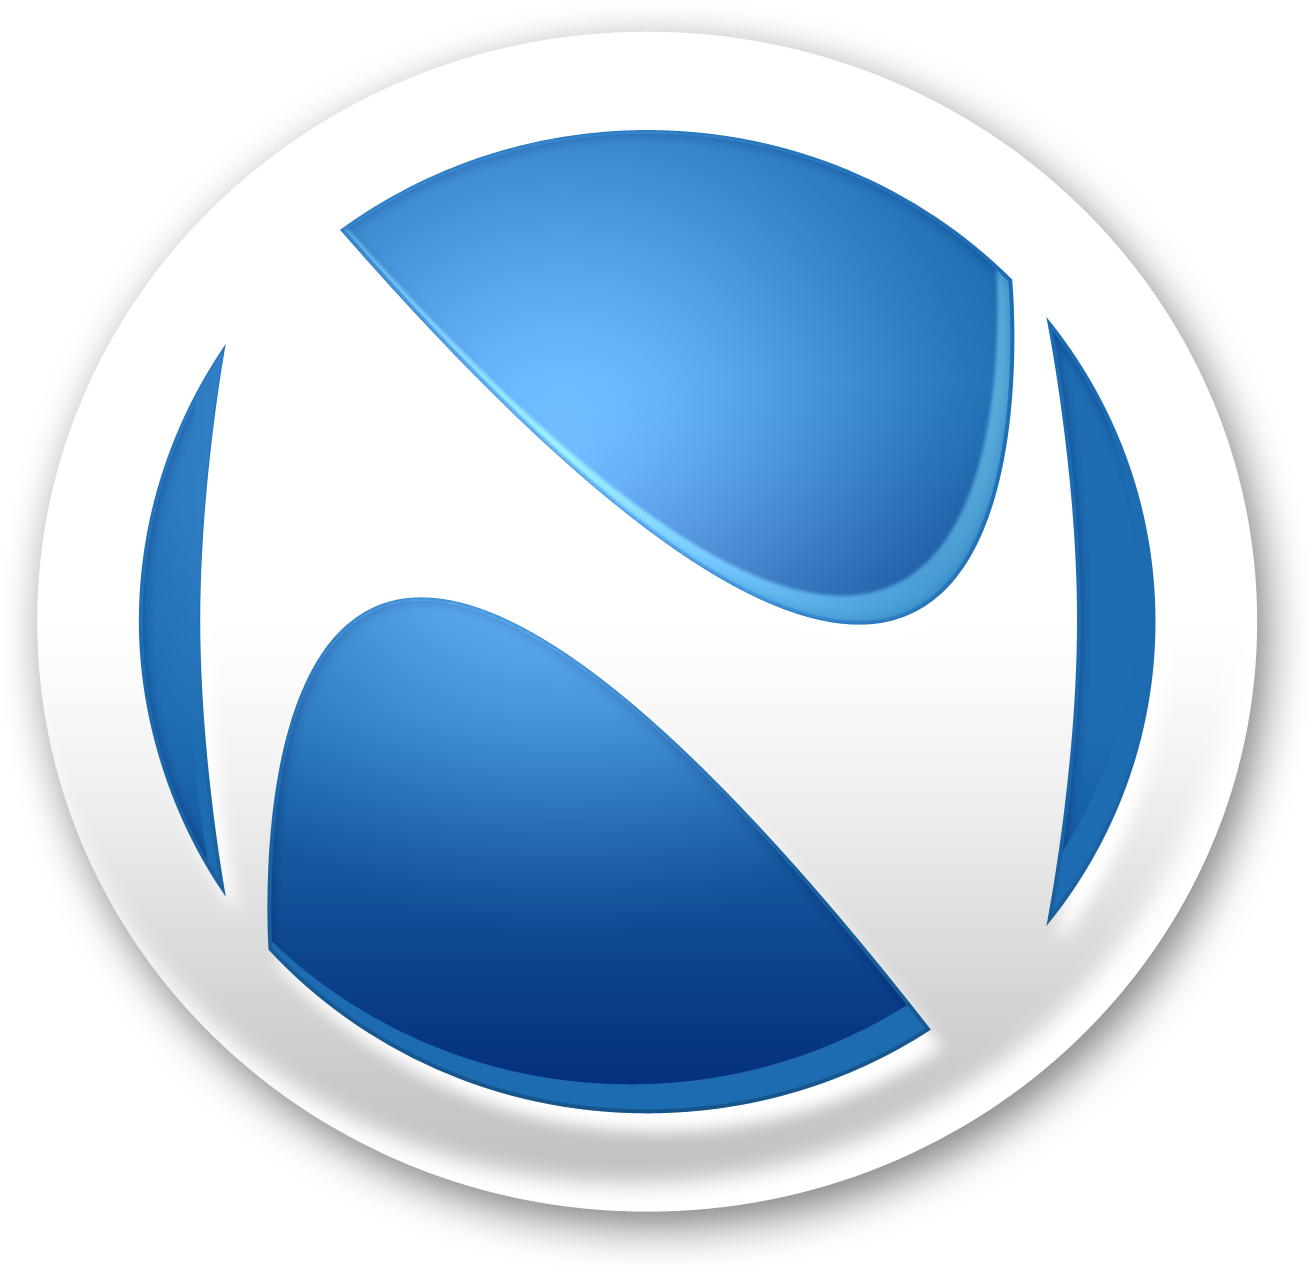 neowin_logo_300f5448.png